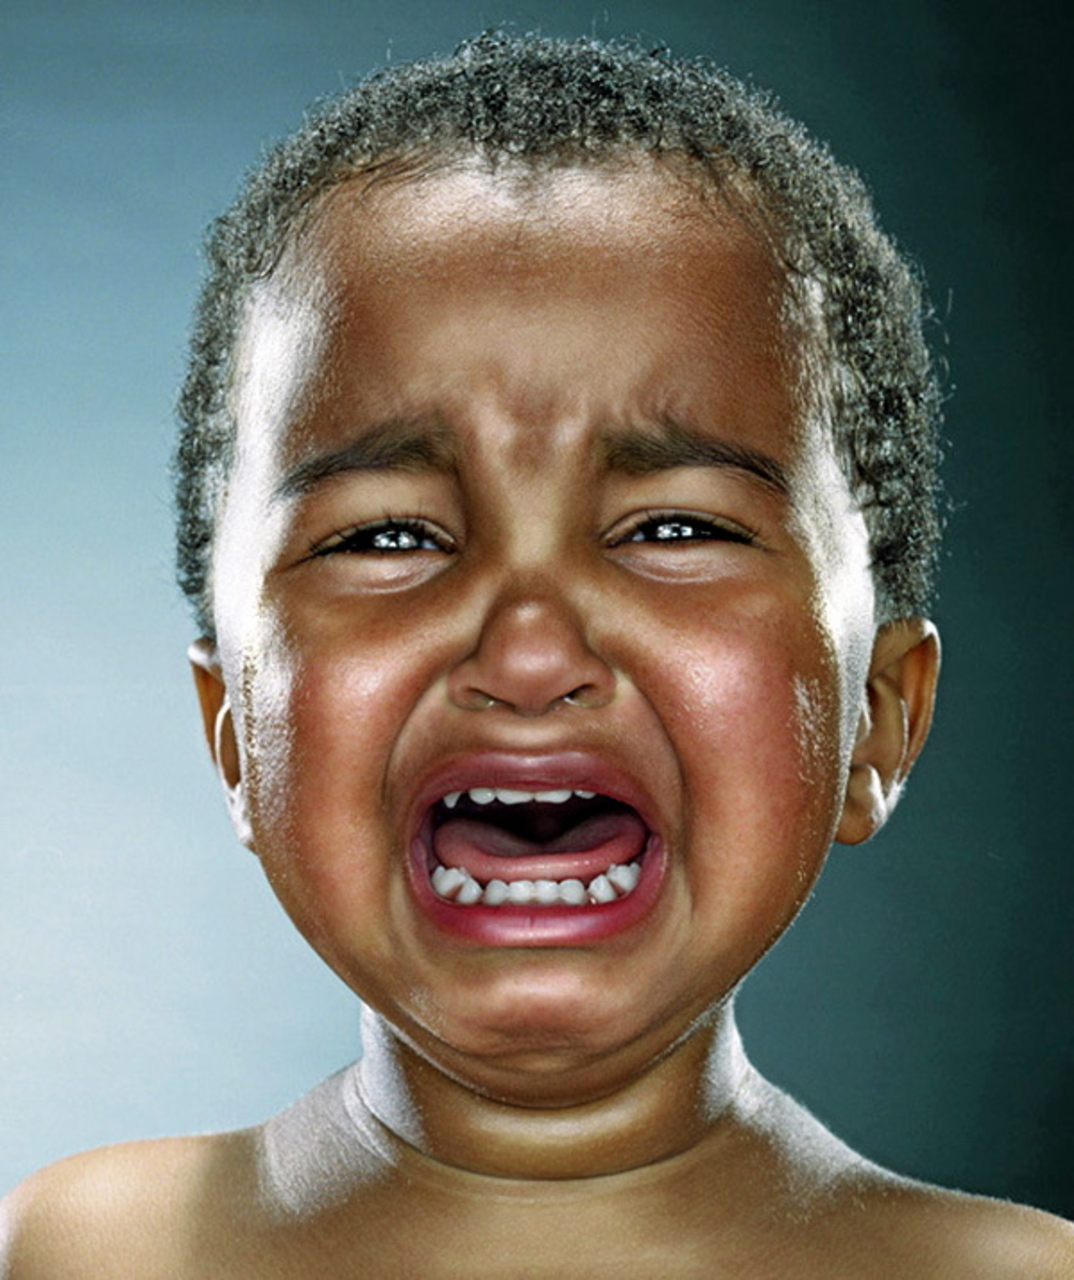 Baby Crying Face Funny Meme Photo